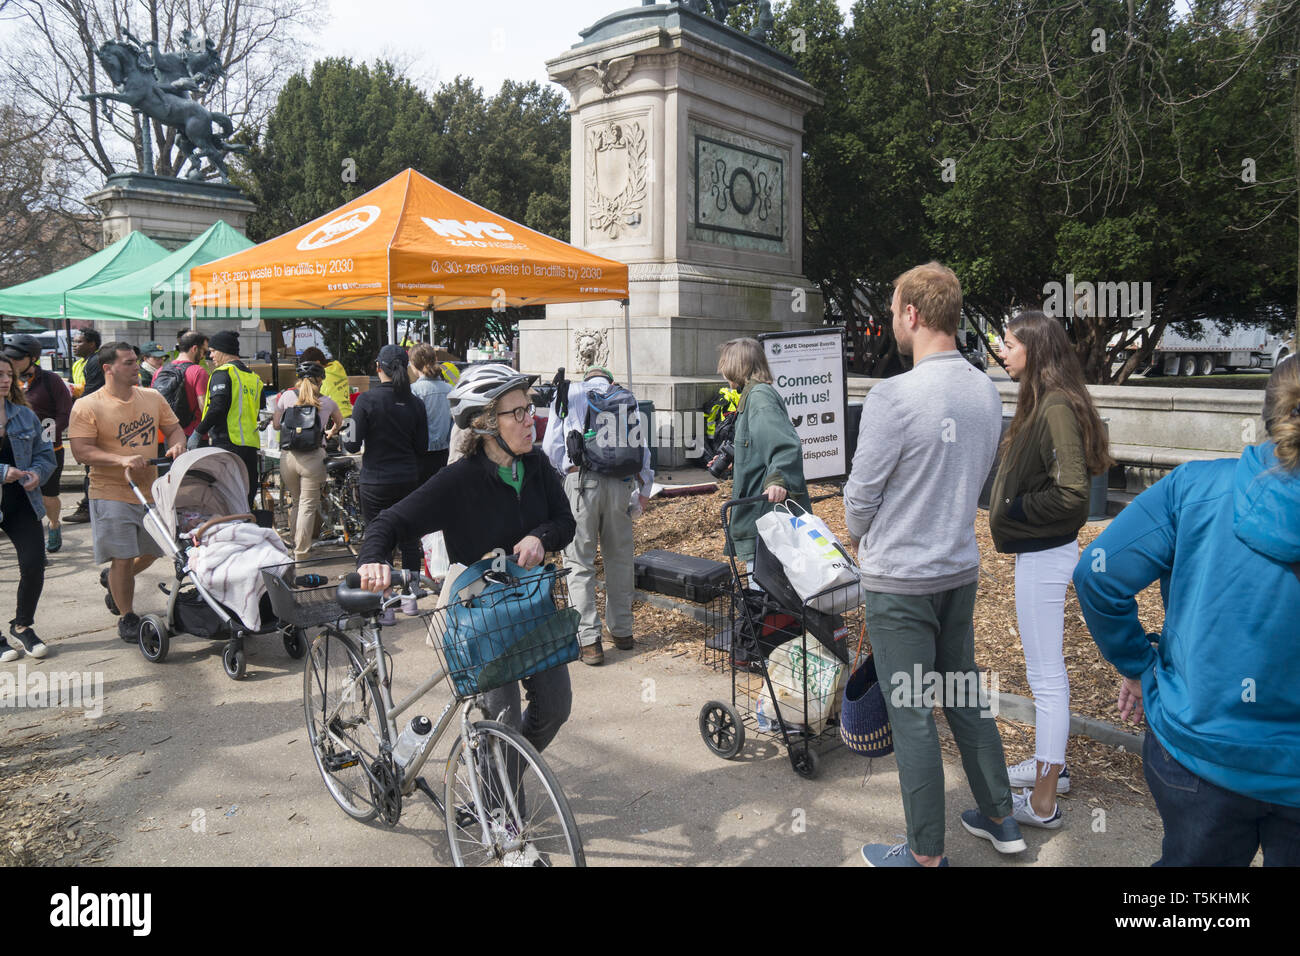 Environmentally conscious New Yorkers drop off old electronics, medicines and hazardous household chemical wastes including paint at the 'Zero Waste To Landfills Project' sponsored by the City of New York. Prospect Park drop-off location in Brooklyn, New York. - Stock Image